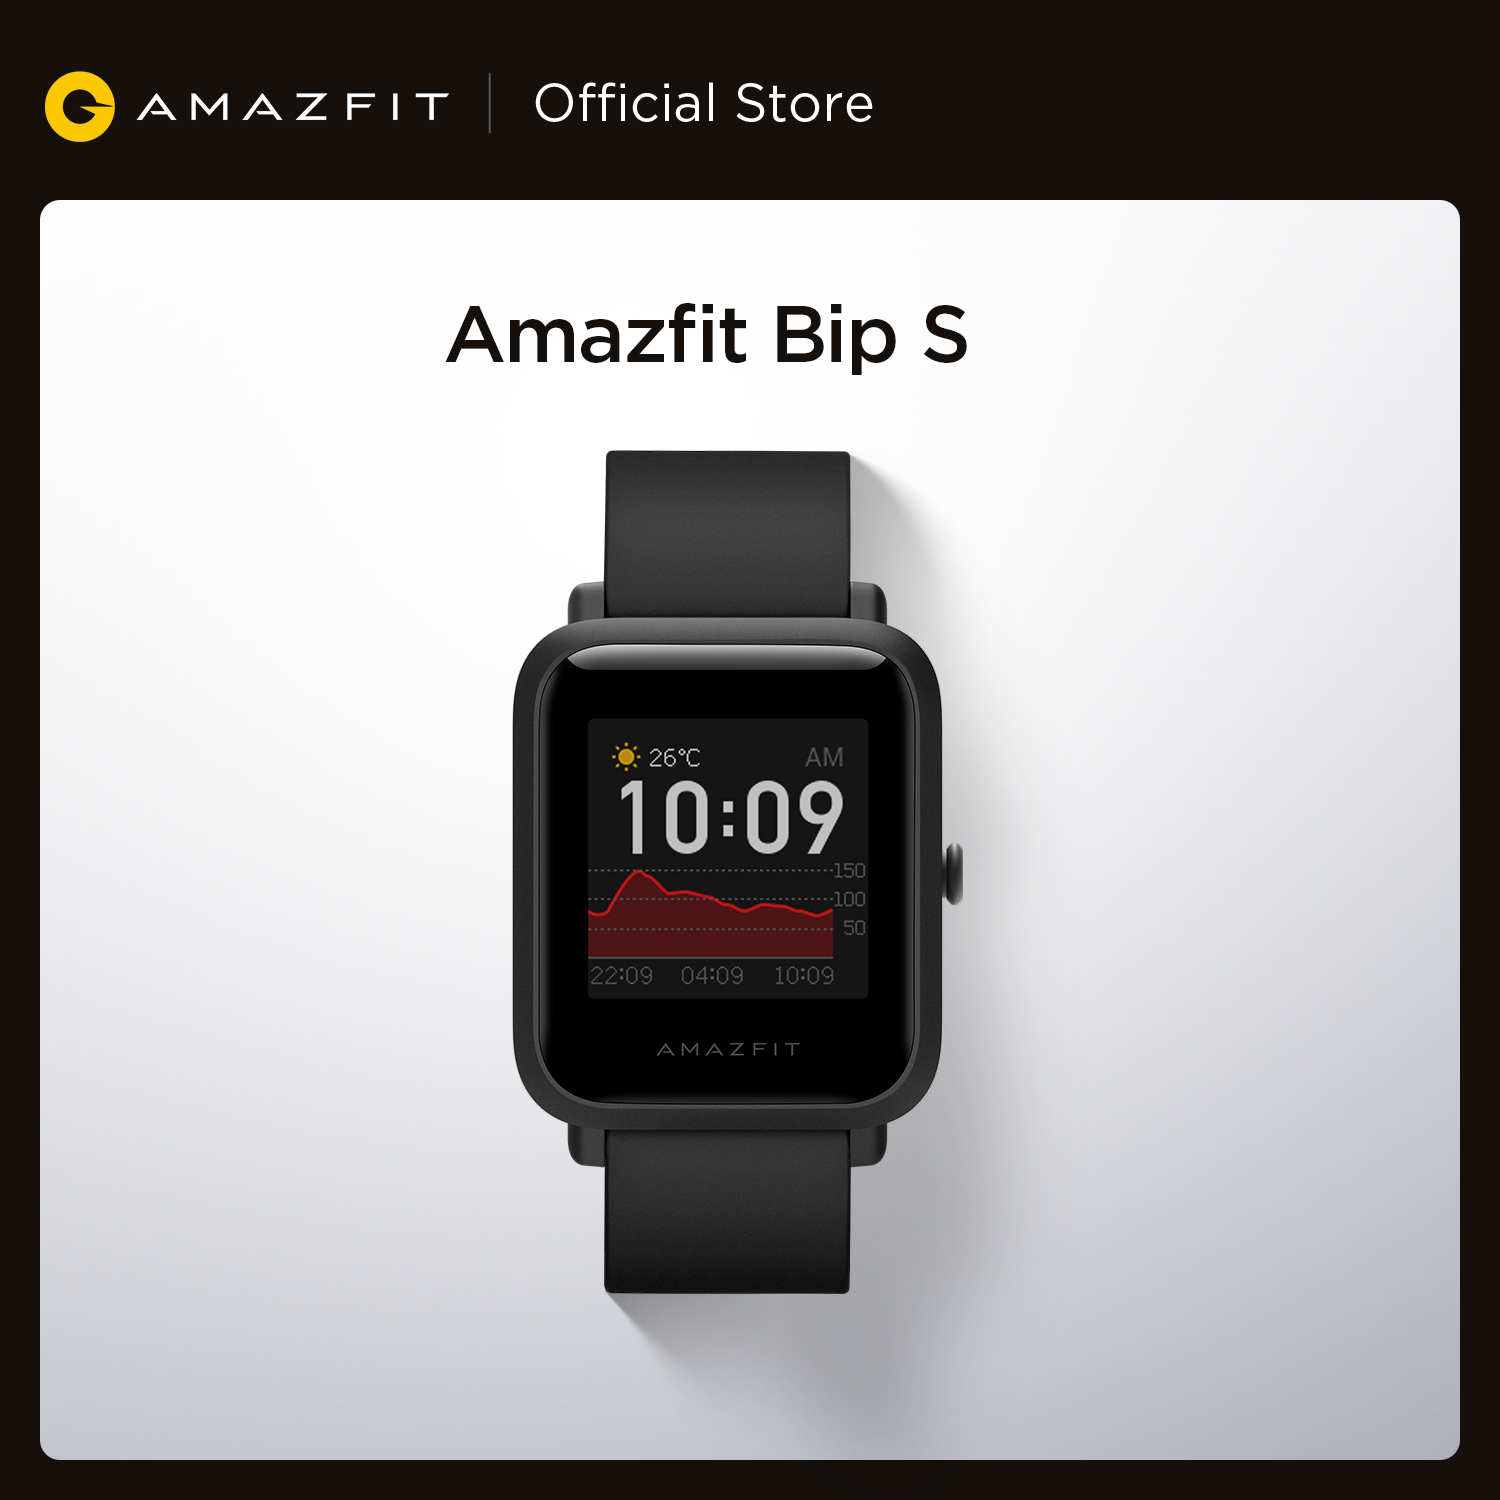 [Aliexpress Premiere] 2020 New Global Amazfit Bip S Smartwatch 5ATM GPS GLONASS Bluetooth Smart Watch for Android iOS Phone Smart Watches Consumer Electronics - AliExpress